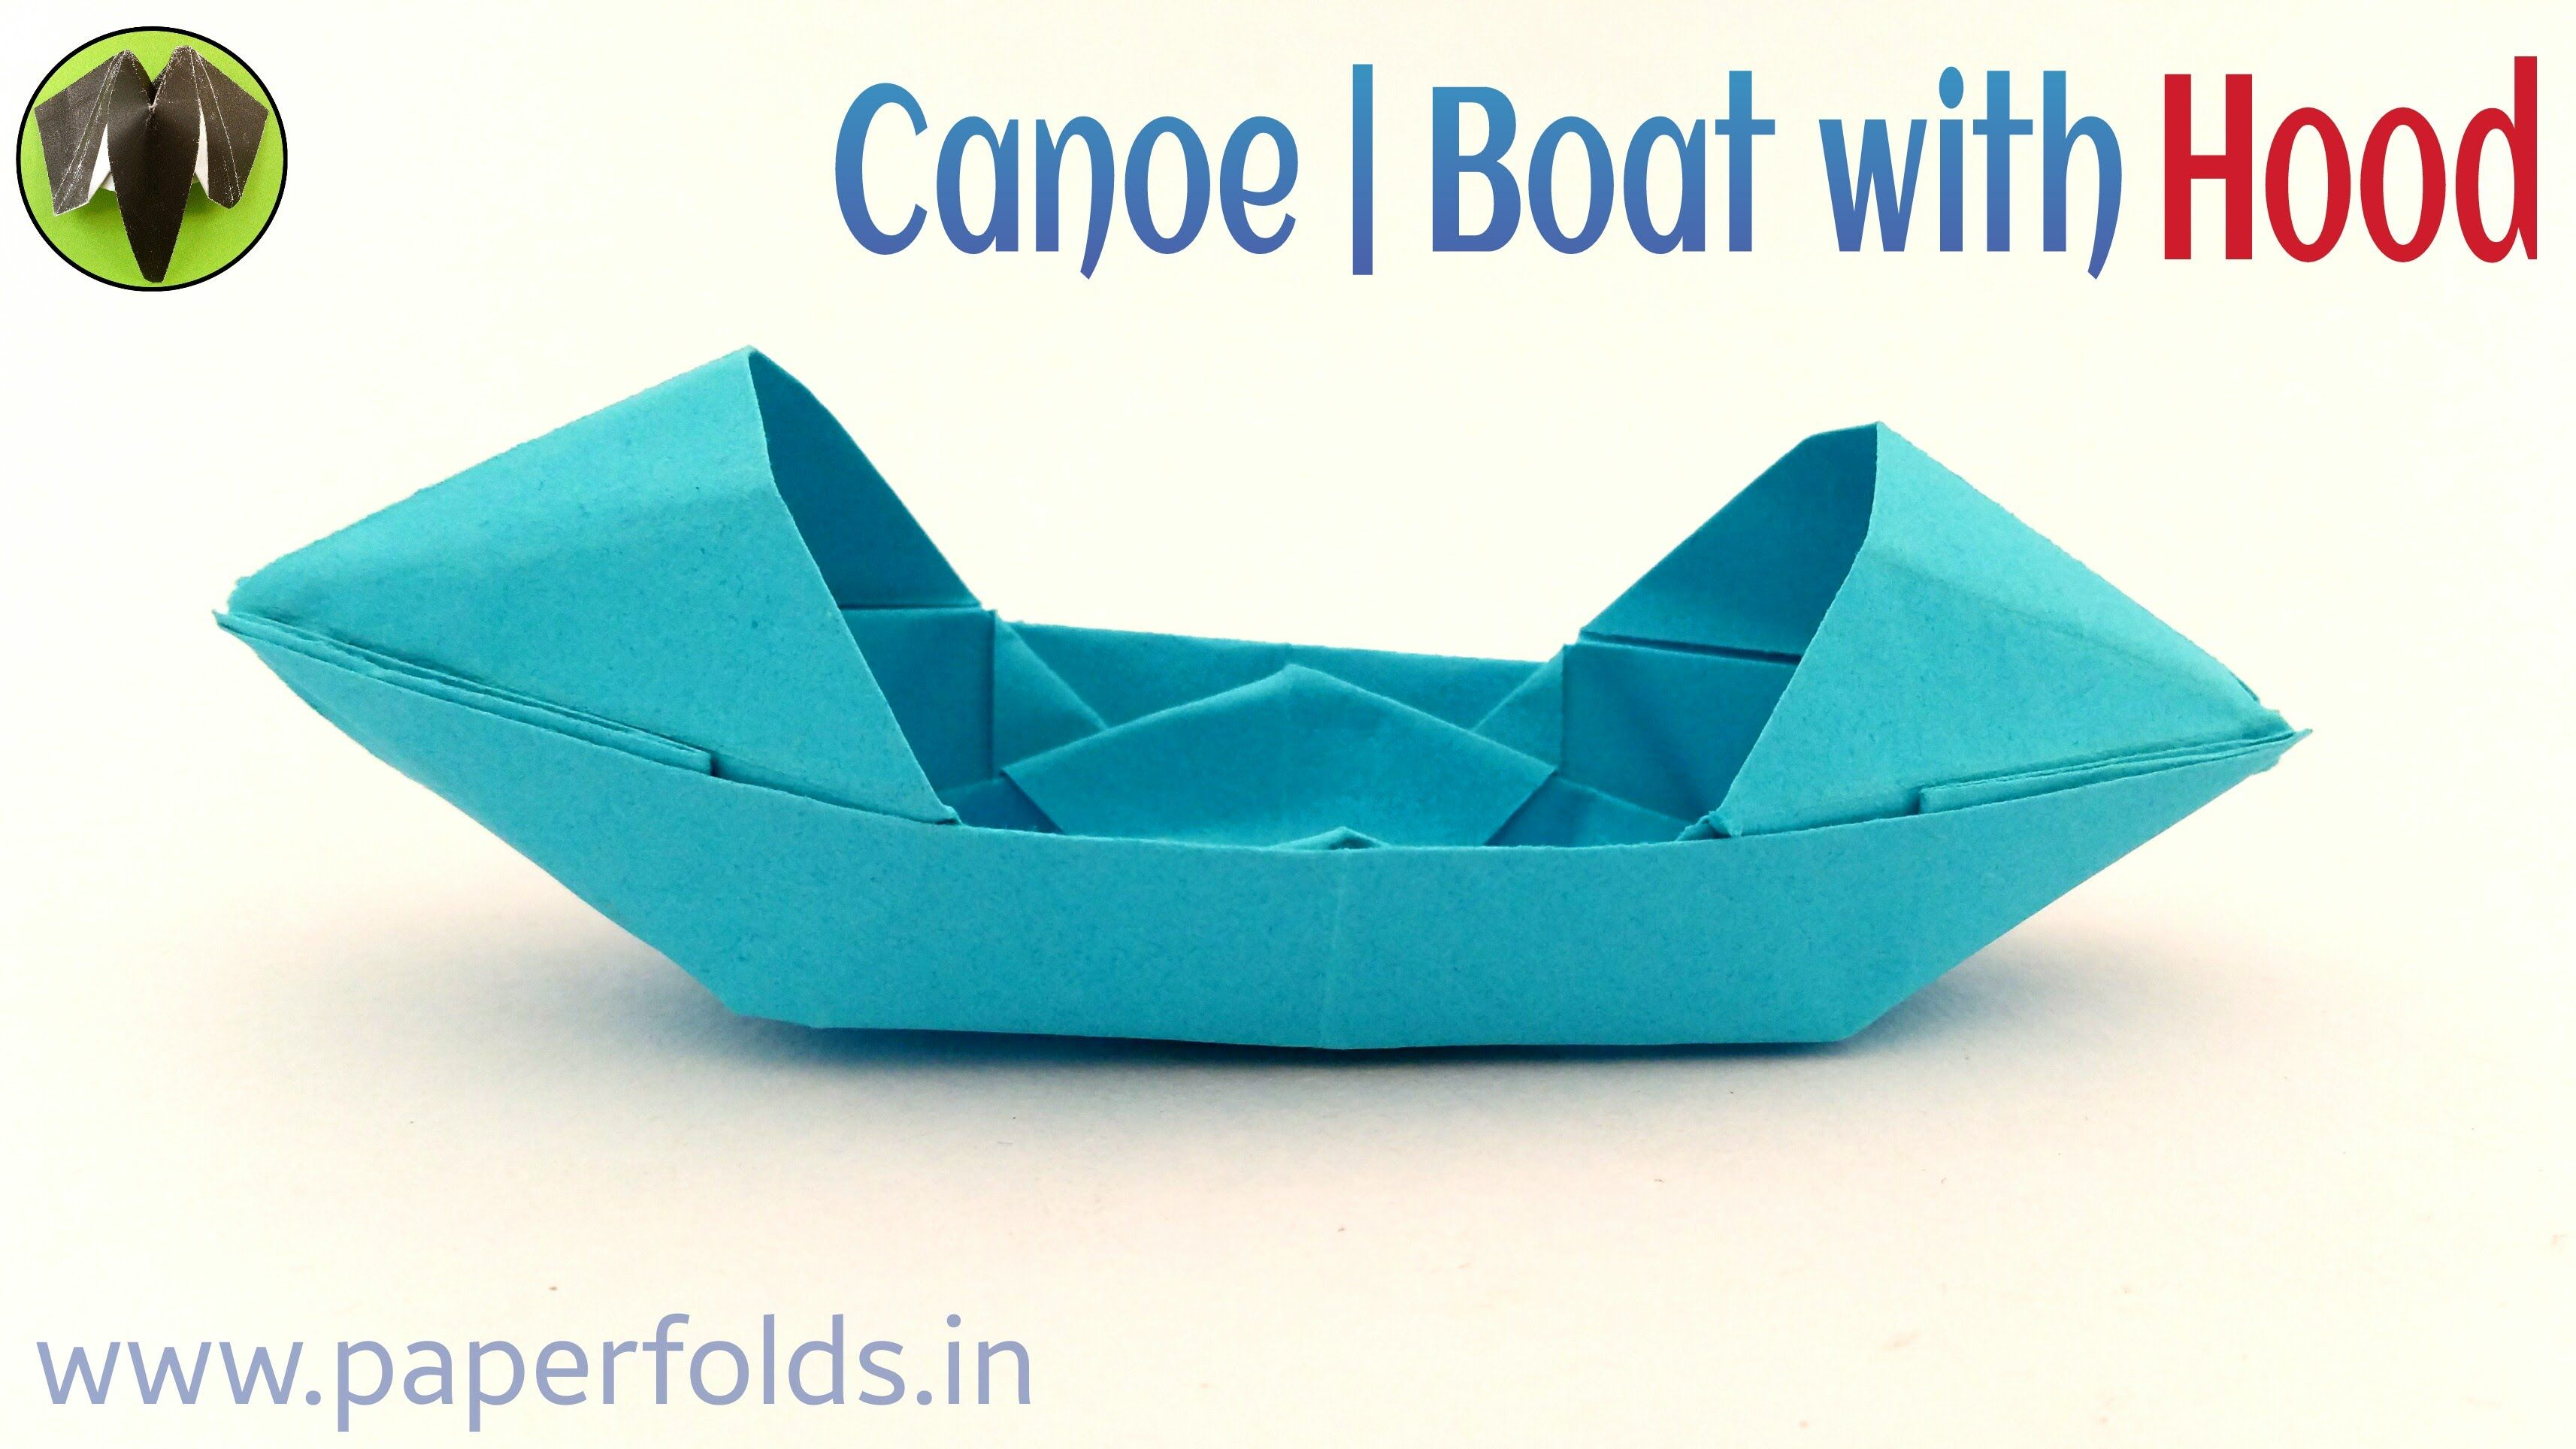 How to make origami canoe paper easy tutorial of canoe boat how to make origami canoe paper easy tutorial of canoe boat how to make origami canoe paper easy tutorial of canoe boat pinterest canoeing jeuxipadfo Image collections